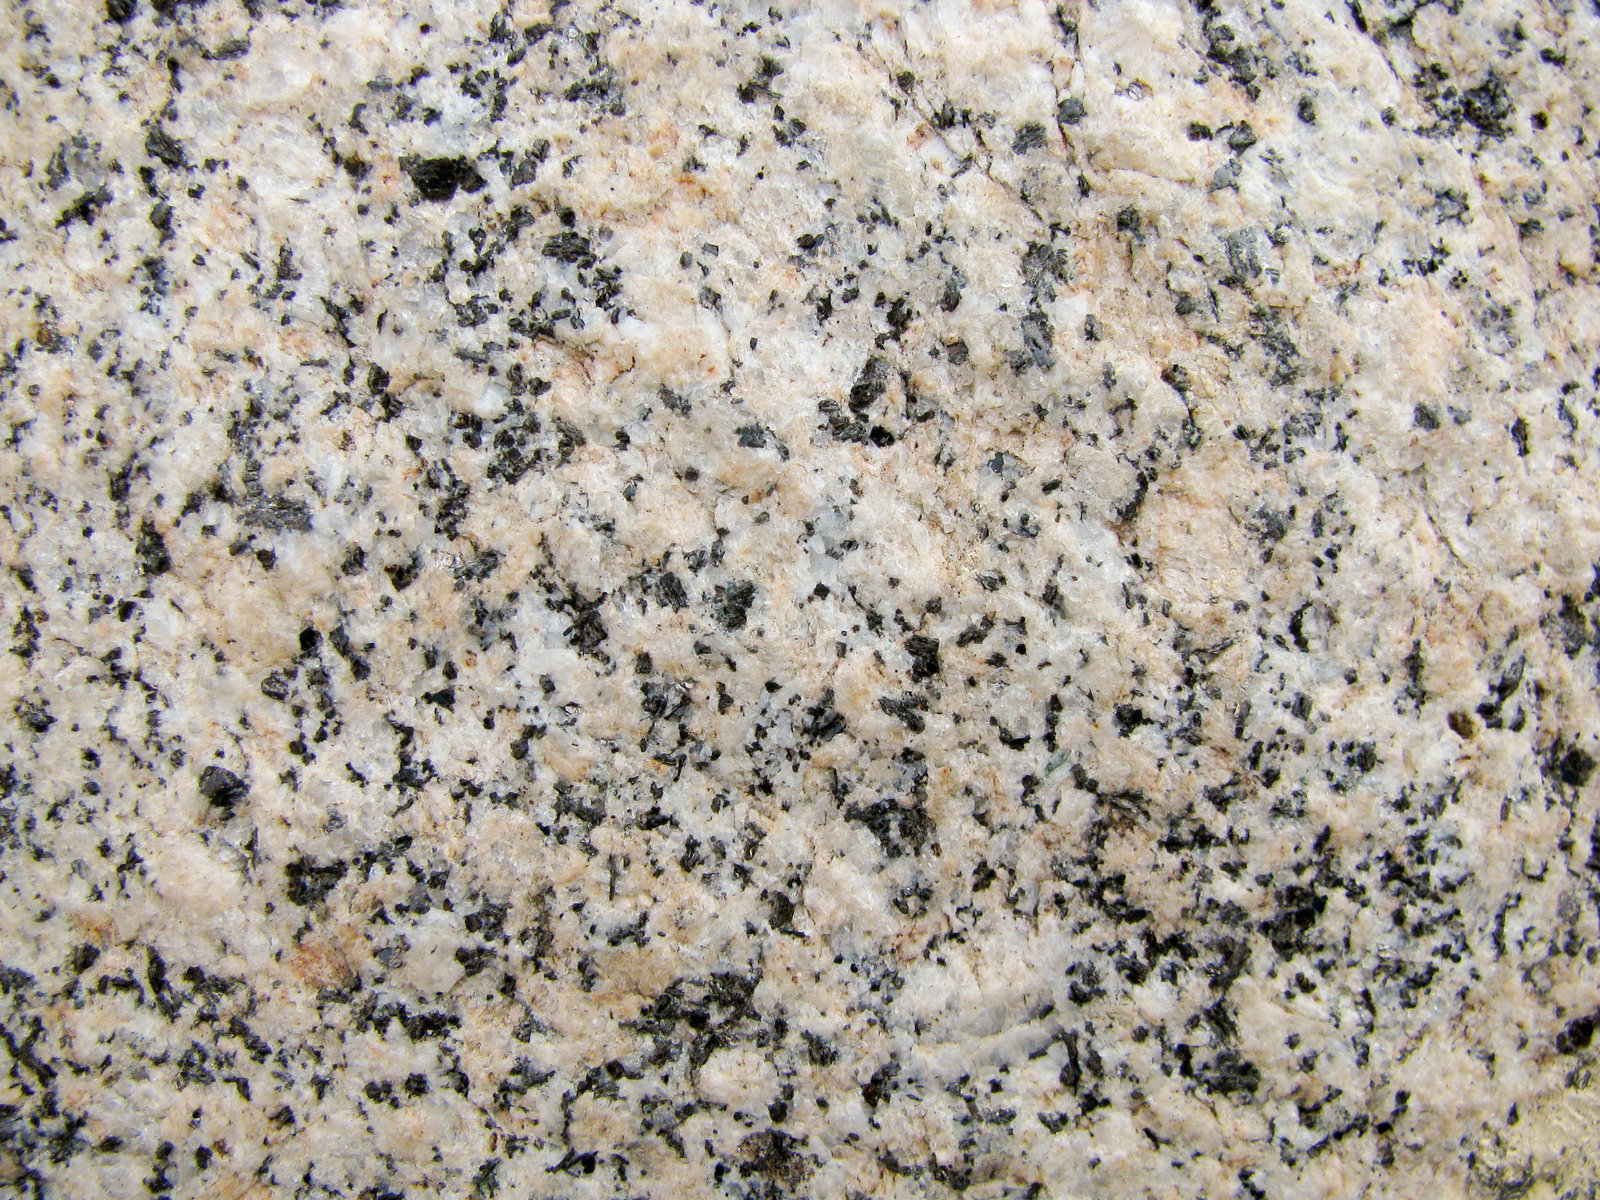 ... Stone ? granite, stone, texture, download photo, stone background